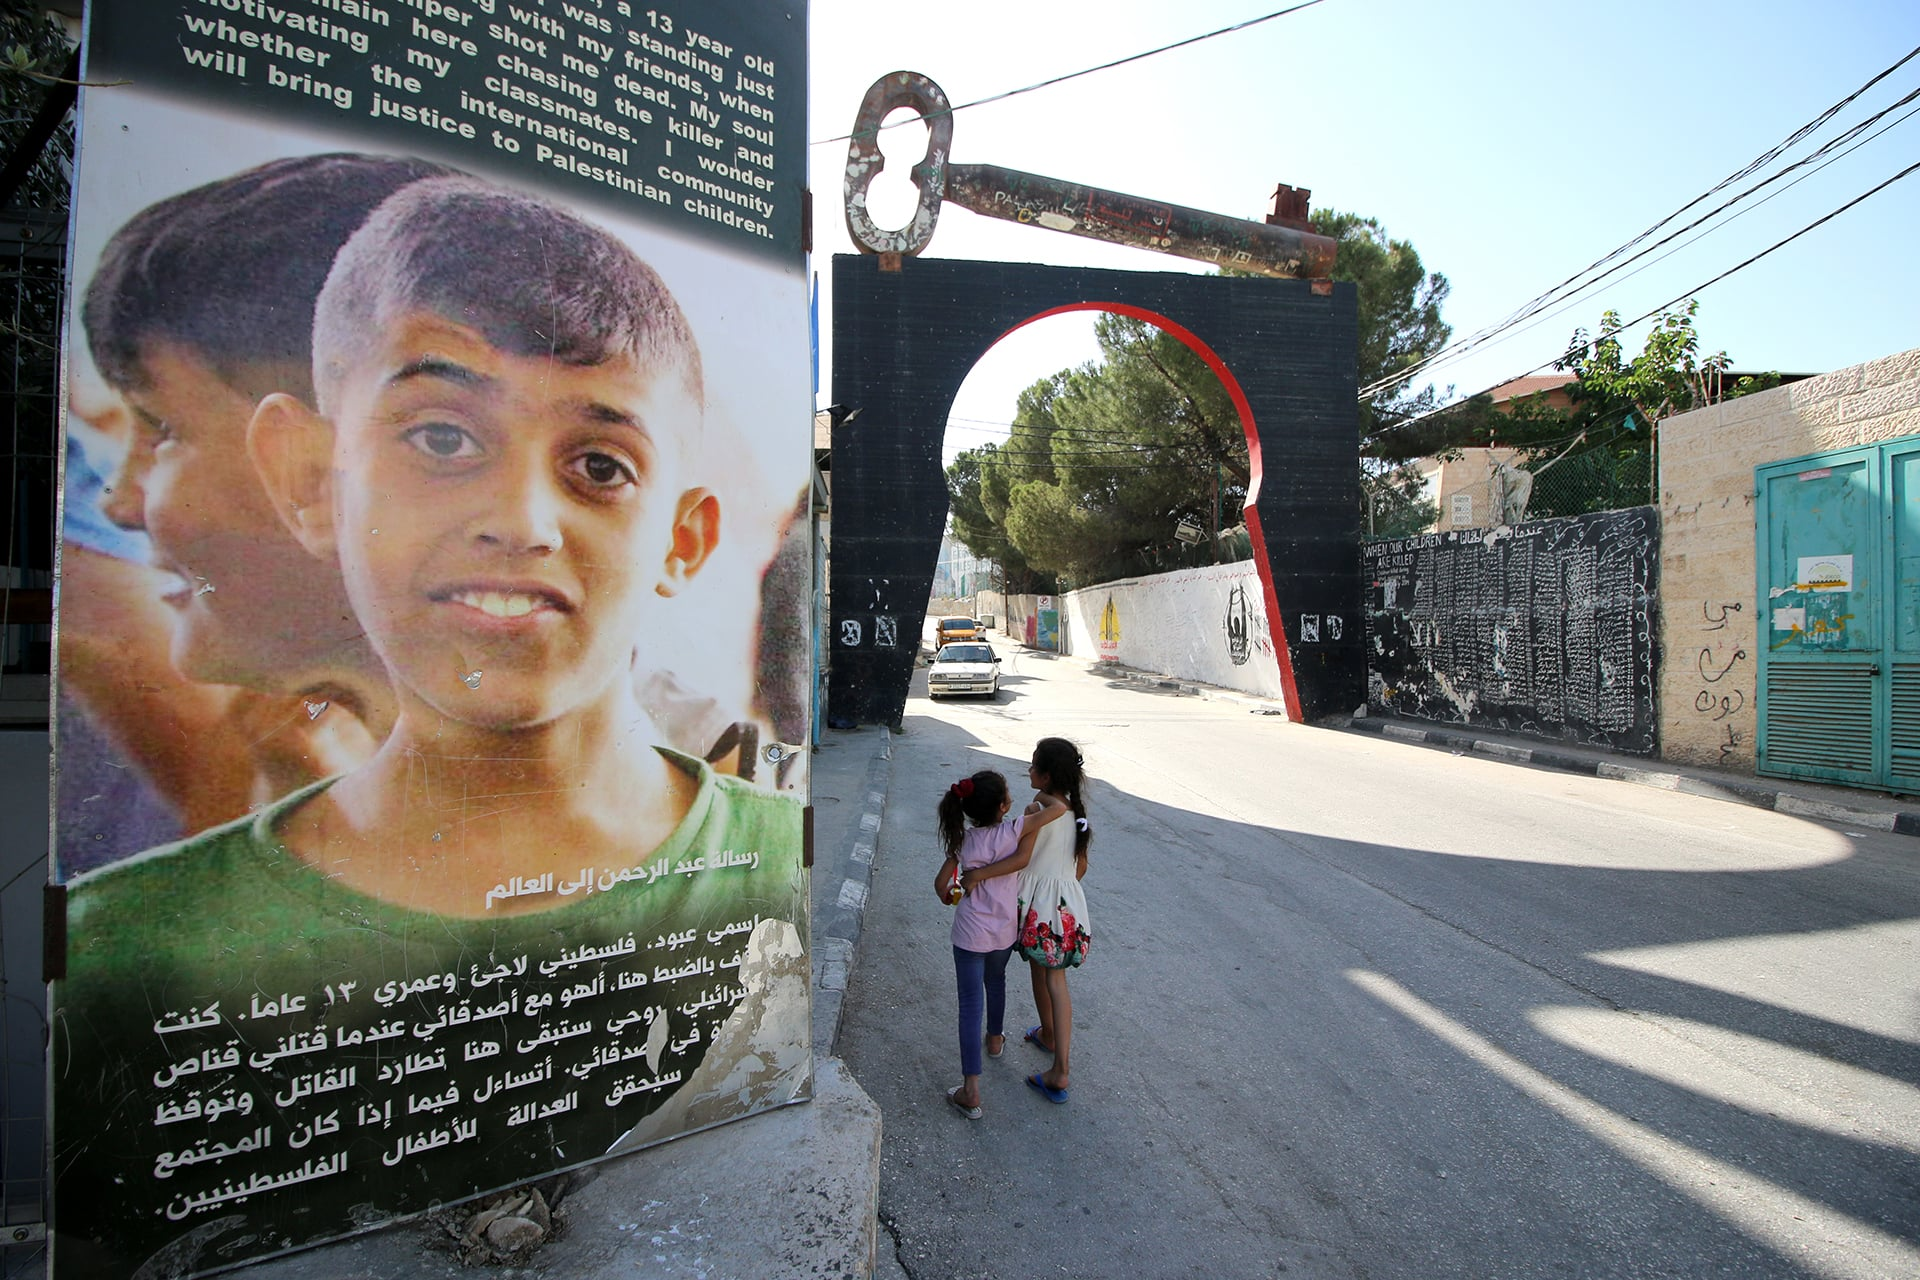 Palestinian children walk in Aida refugee camp by a poster of resident Abdel-Rahman Obeidallah, who was killed by the Israeli army at the age of 13. (Photo: DCIP/ Ahmad Al-Bazz)